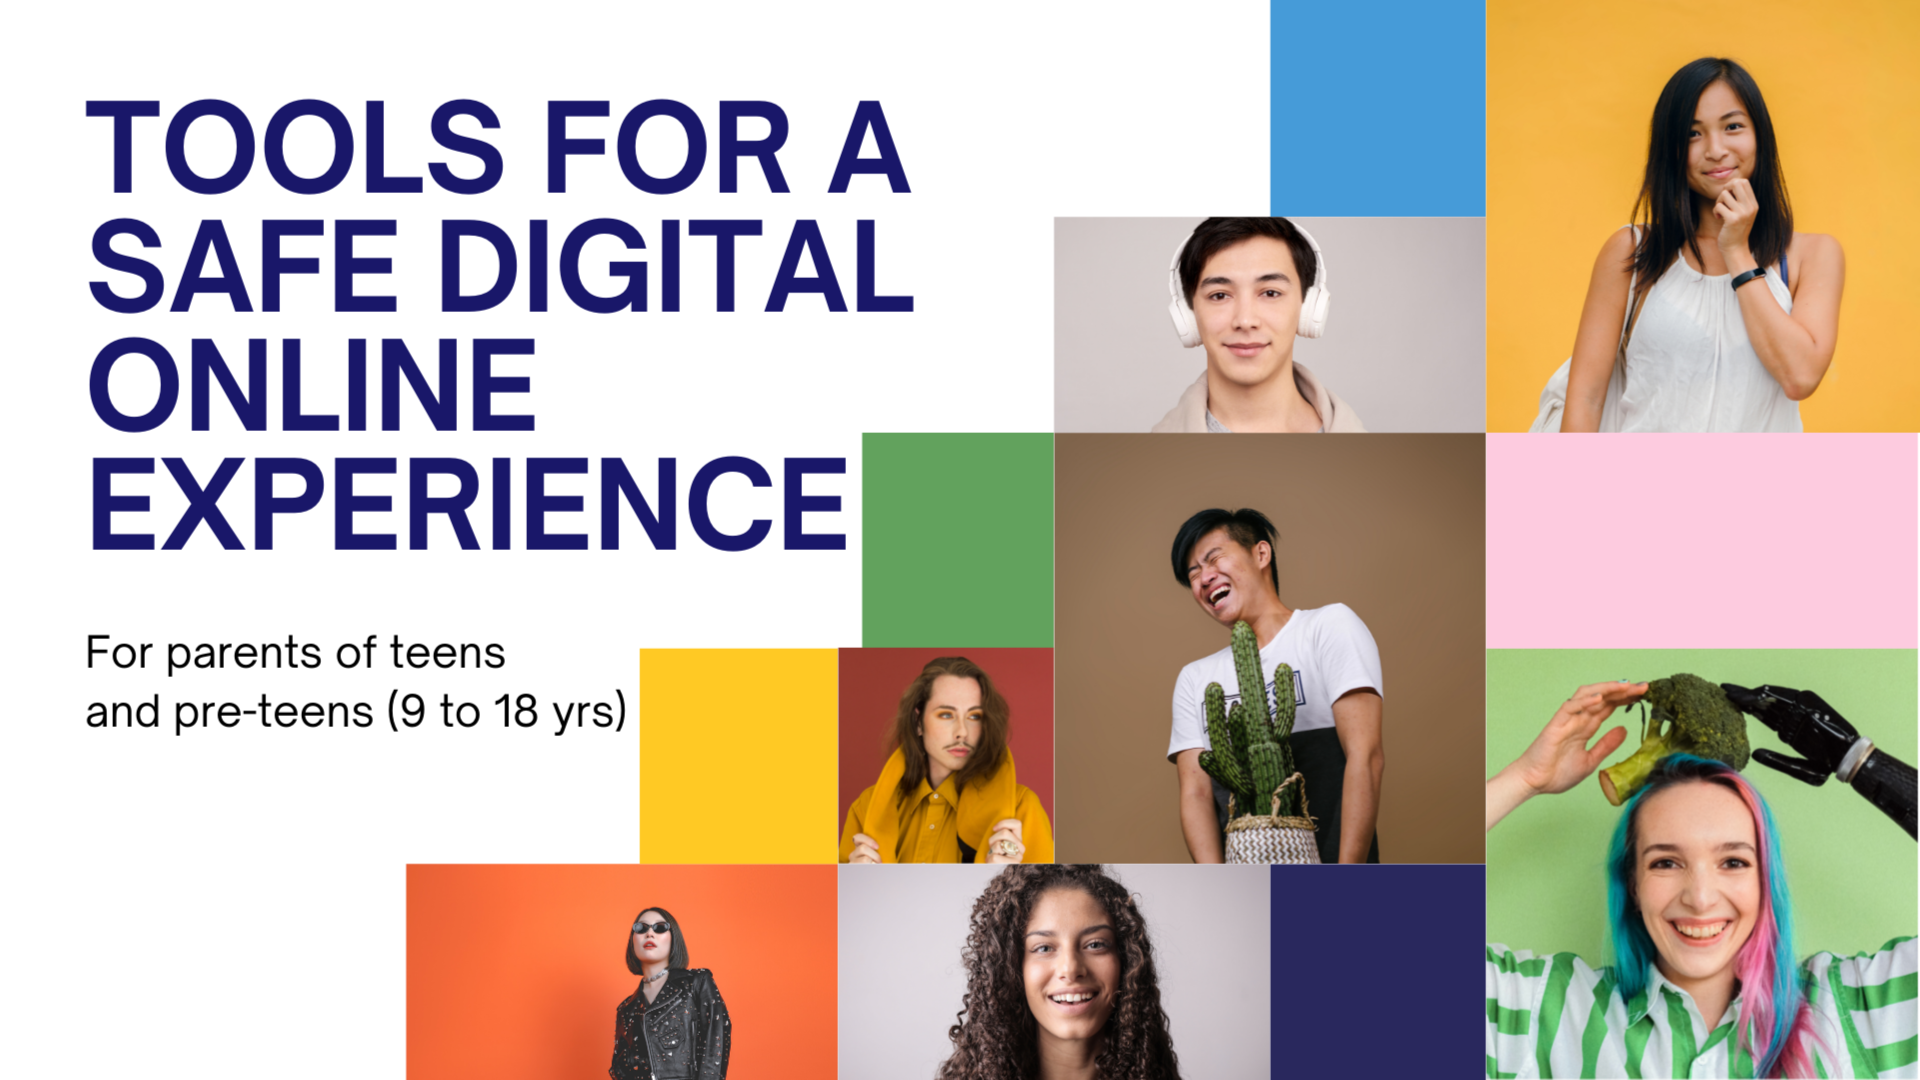 Tools for a safe digital online experience